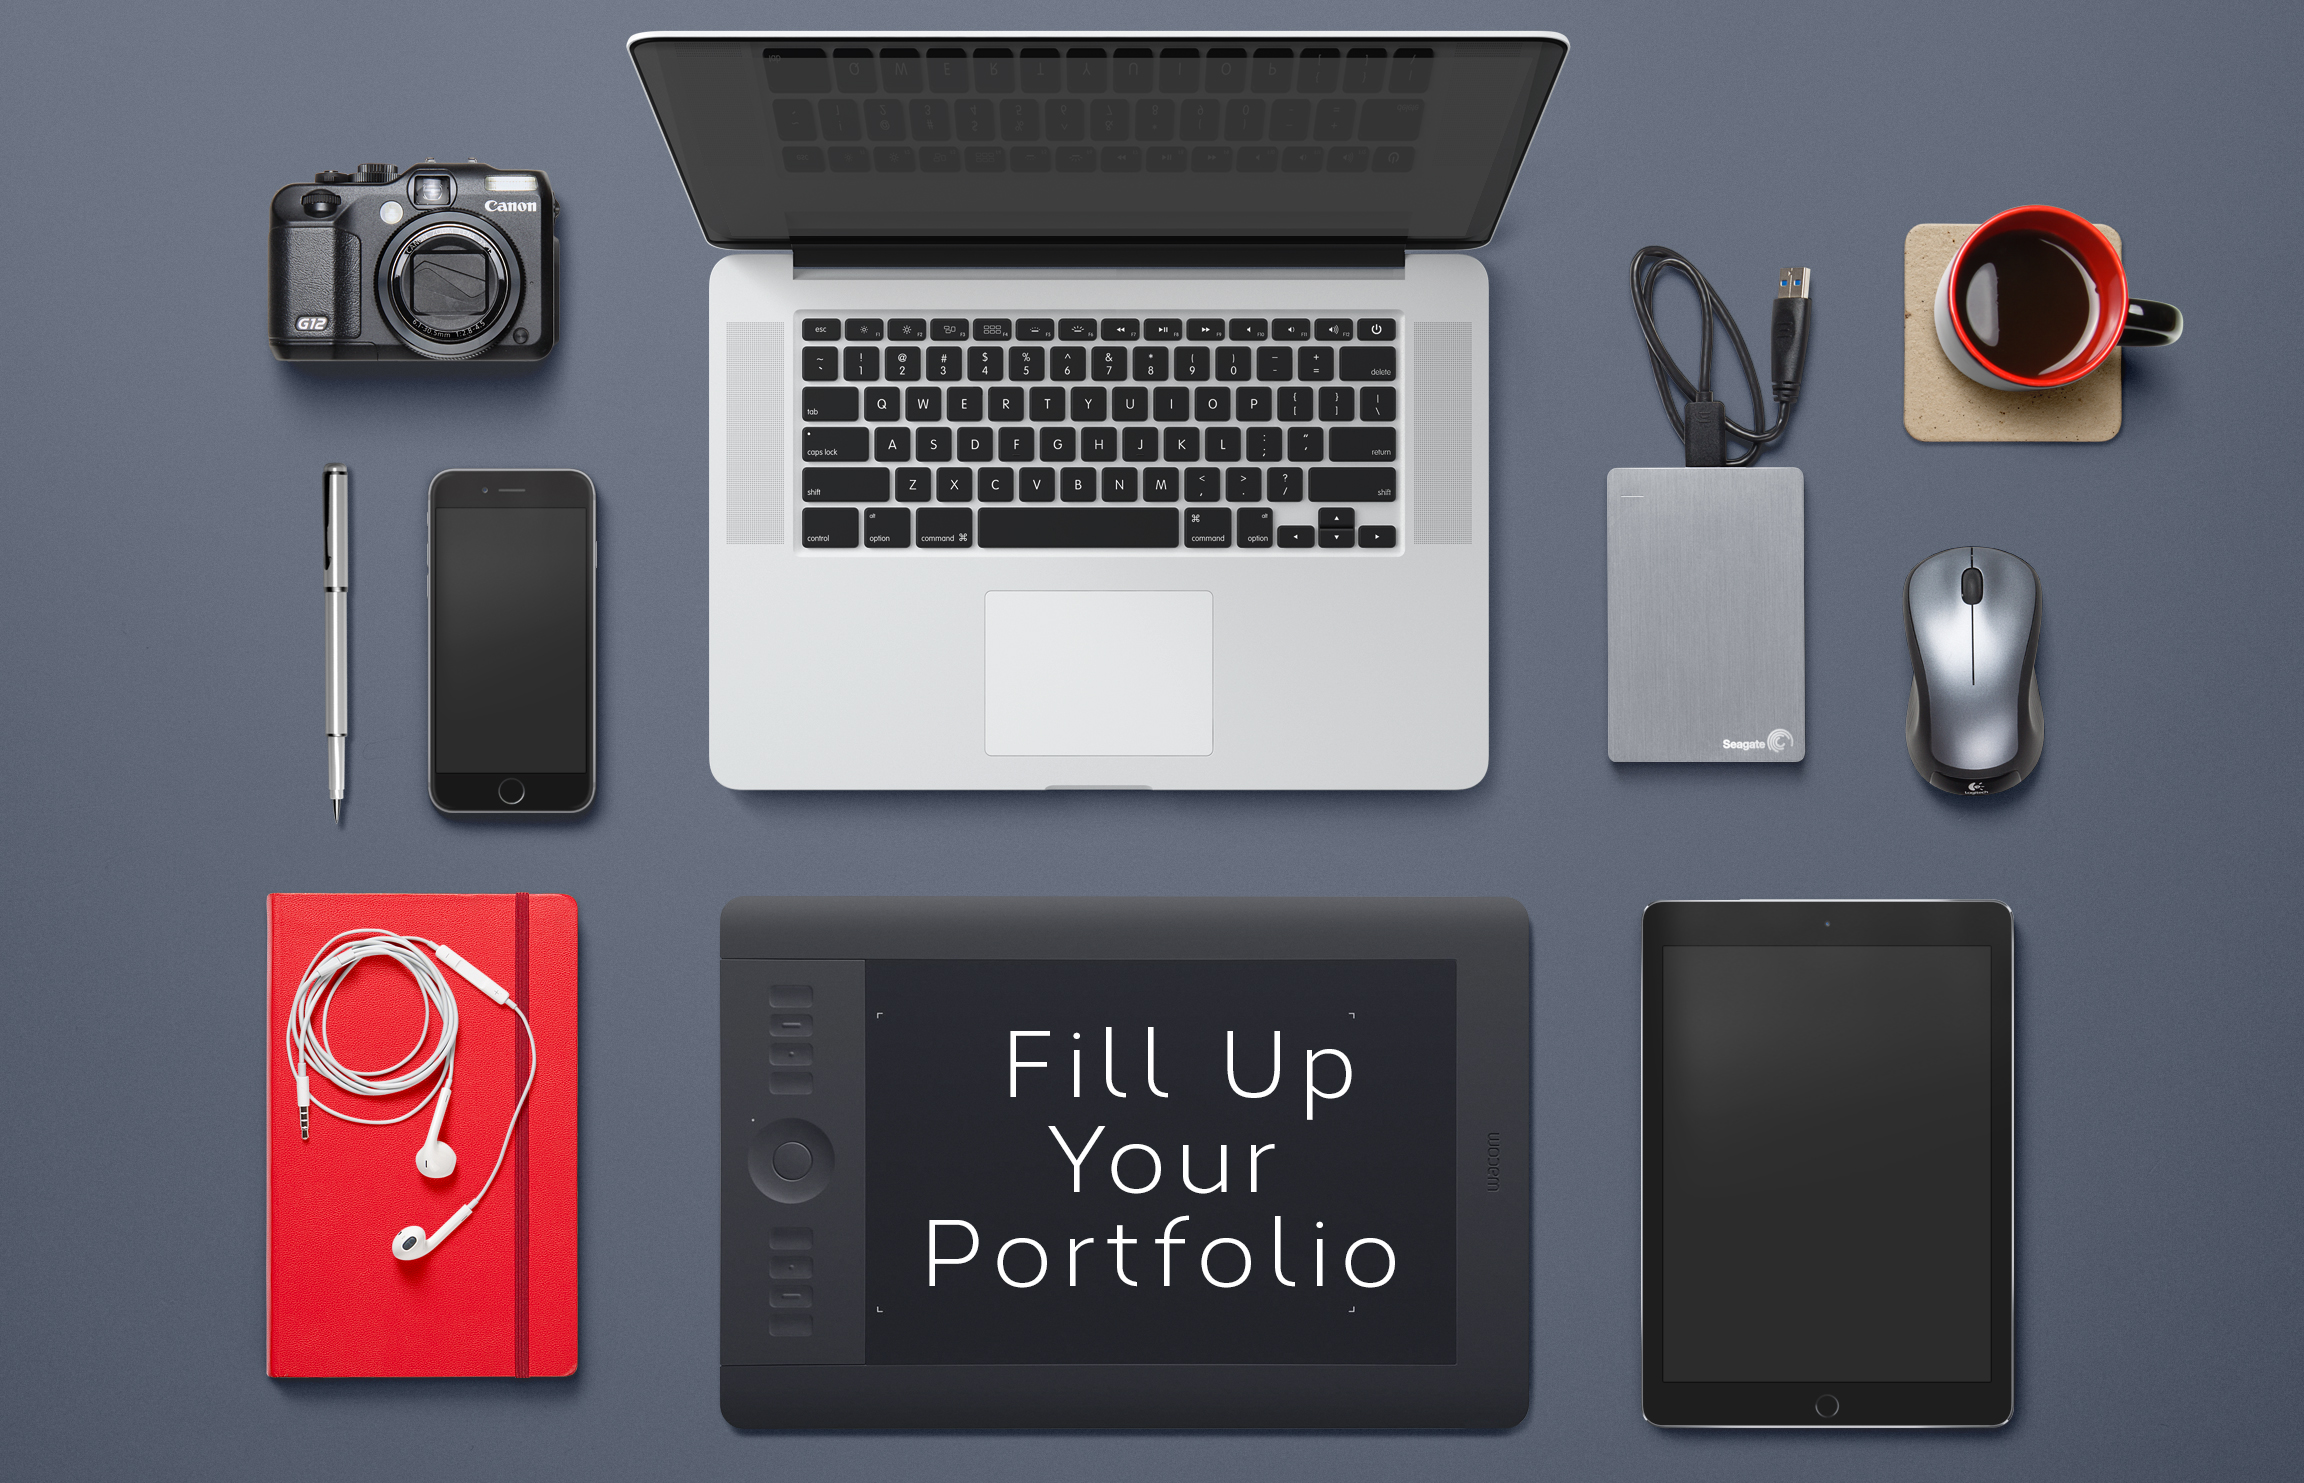 15 Design Ideas to Fill Up Your Portfolio | Inspirationfeed